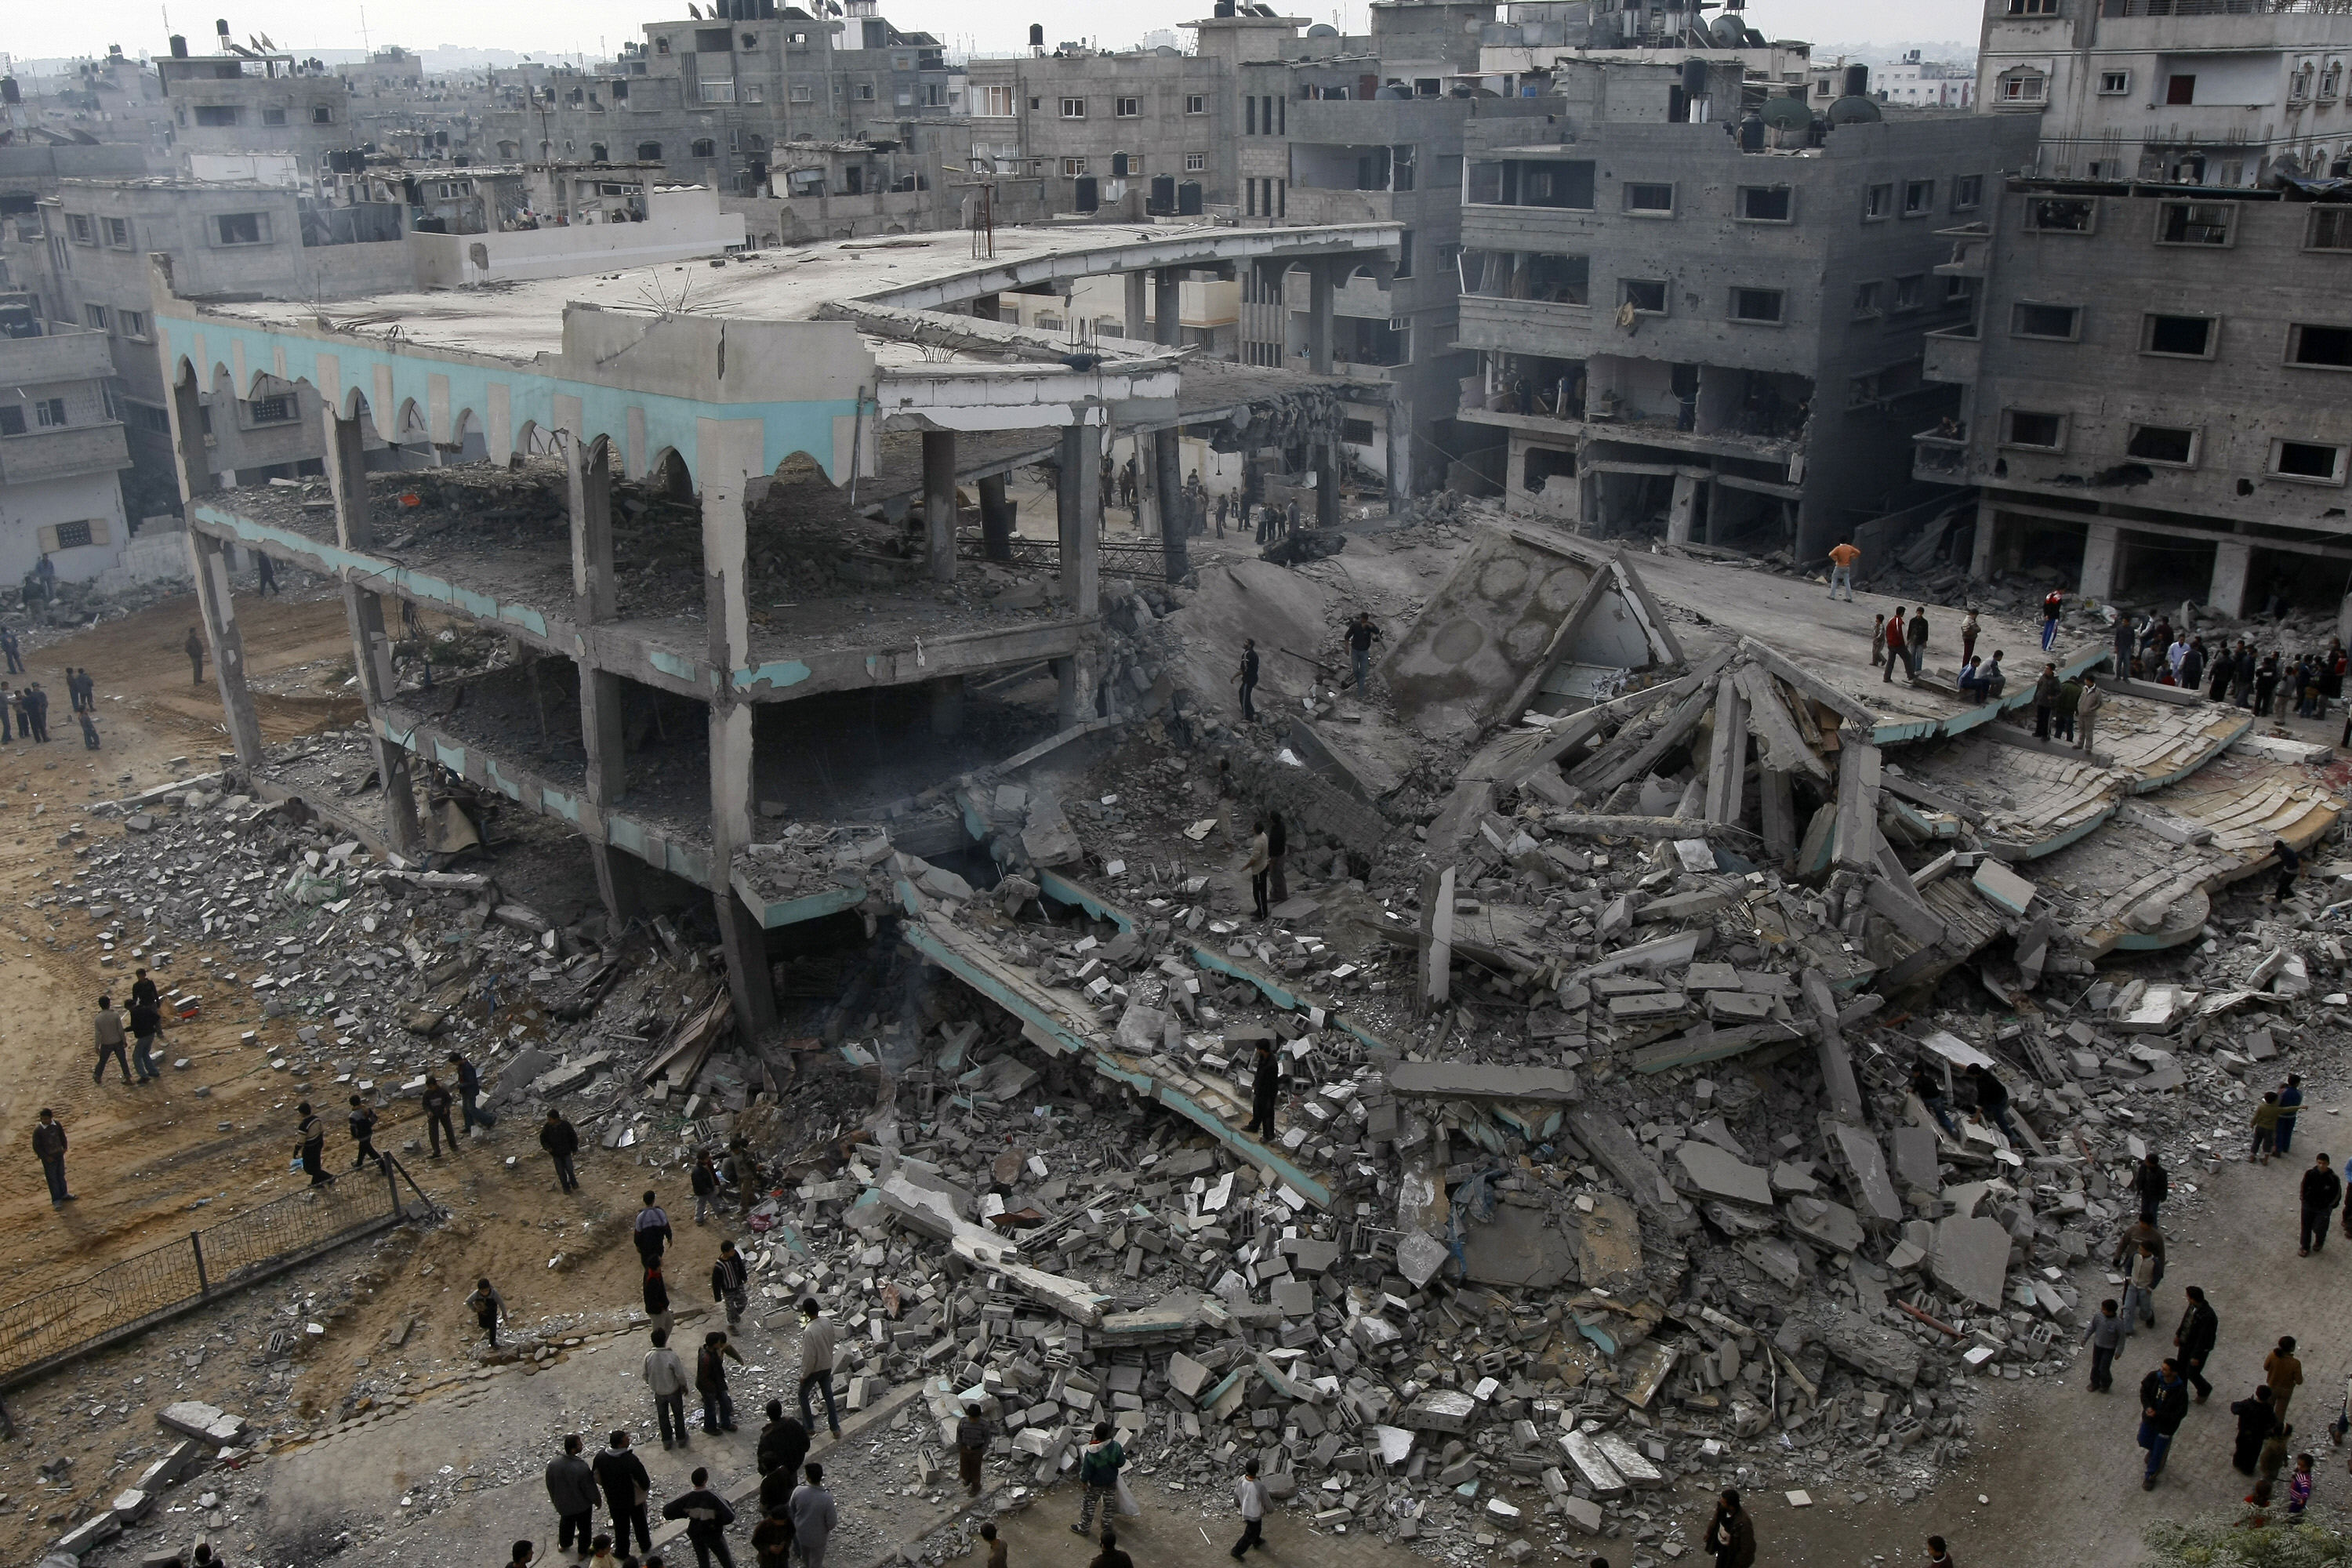 The summer 2014 war between Israel and Hamas resulted in over 2,000 deaths and the destruction of some 7,000 homes in Gaza, according to the United Nations. (AFP File Photo)